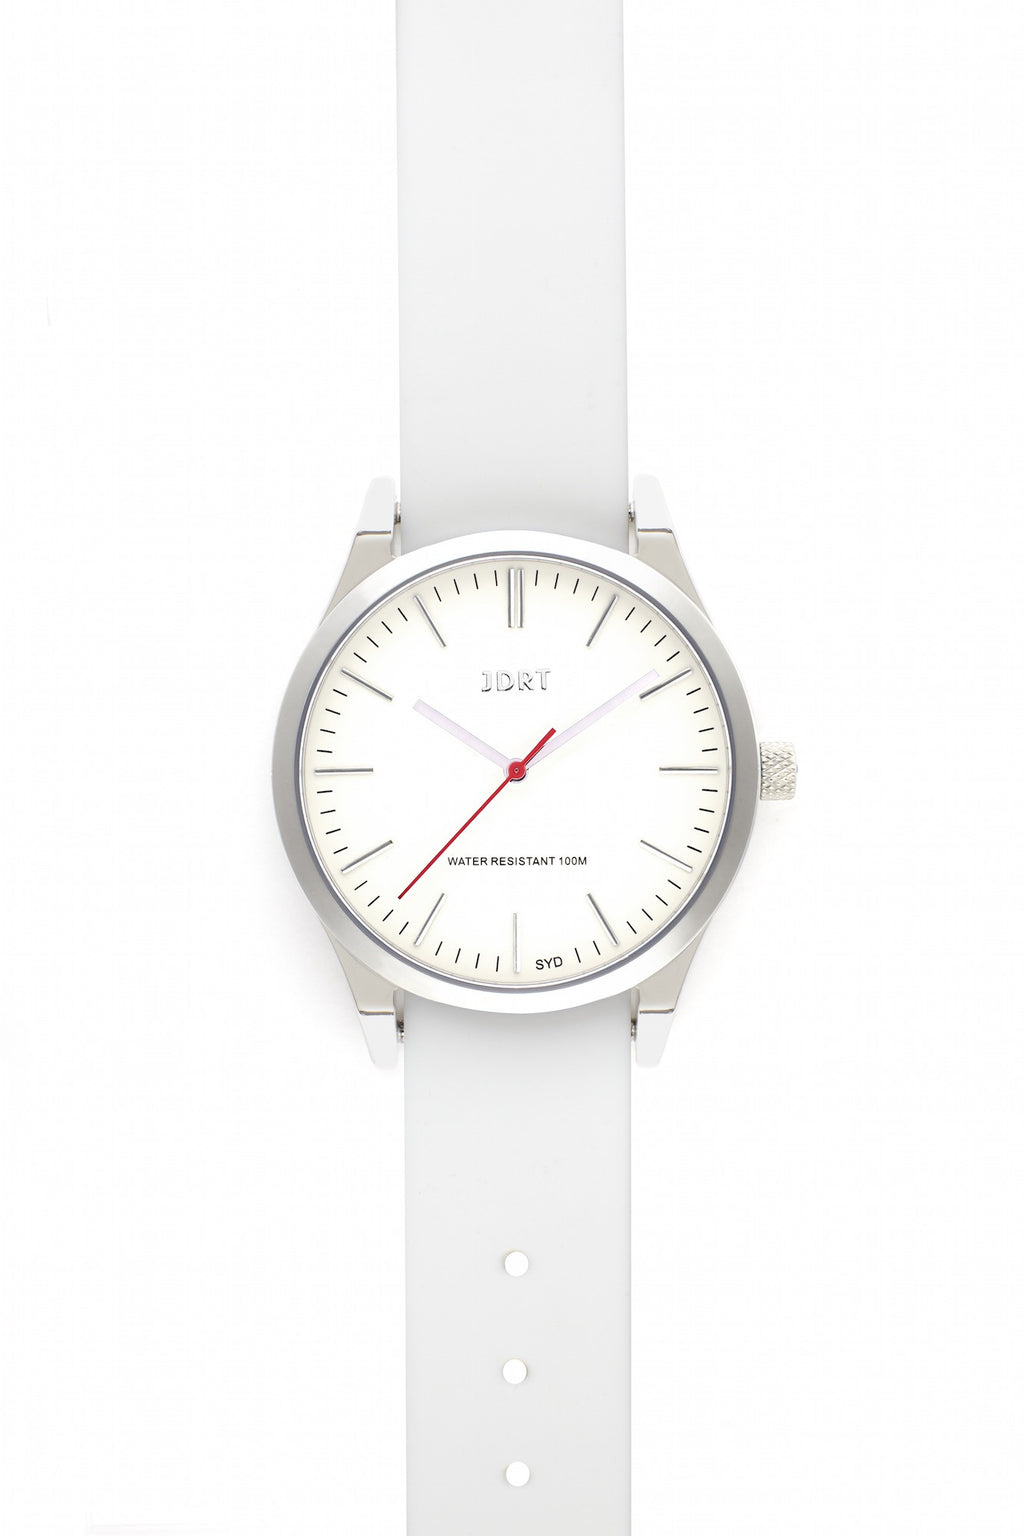 Antique White Face with Antique White Silicone Watch Band